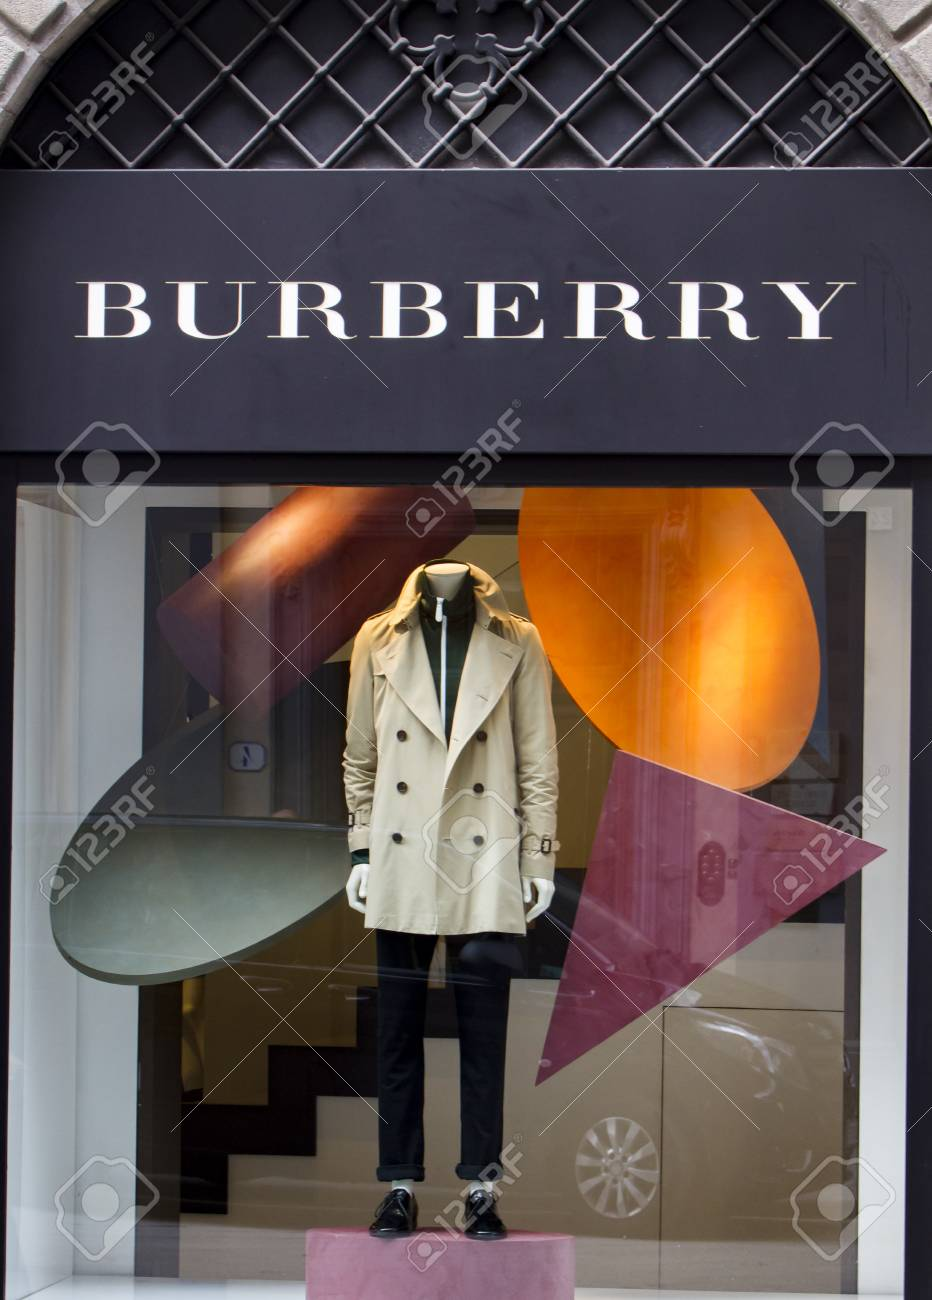 FLORENCE, ITALY - SEPTEBER 18, 2016: Detail of the Burberry store